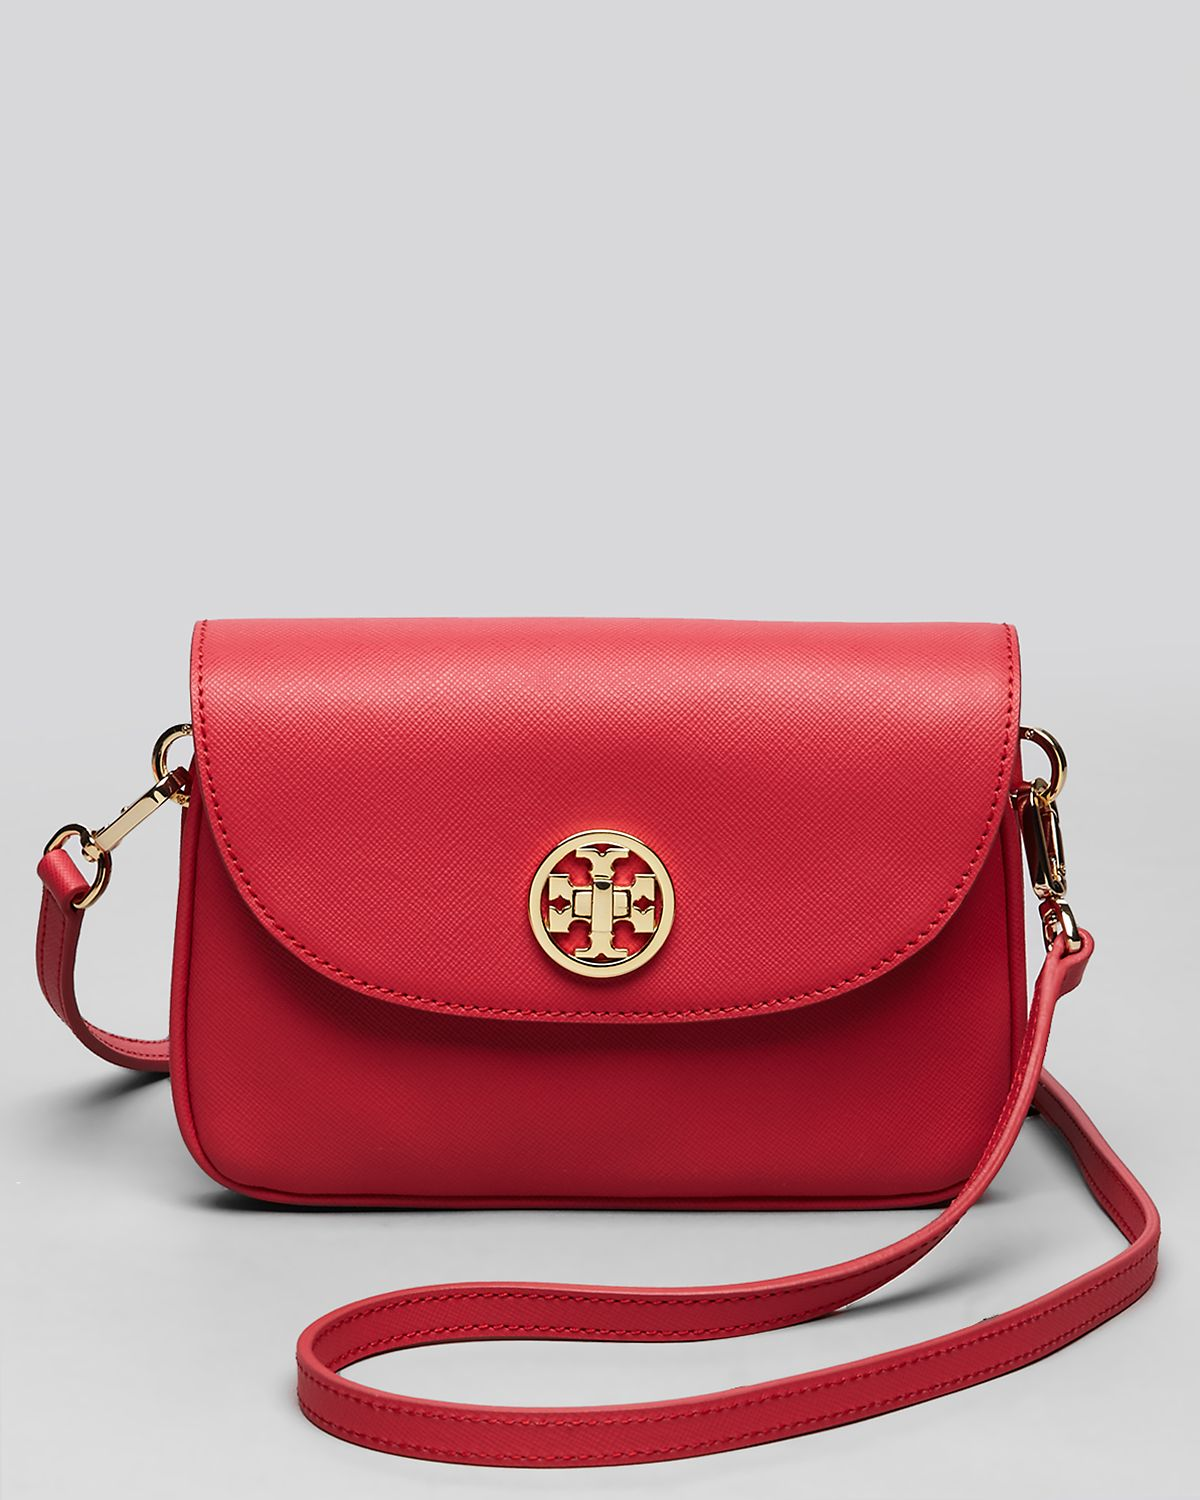 6e6db19eac4 Lyst - Tory Burch Crossbody Robinson in Red